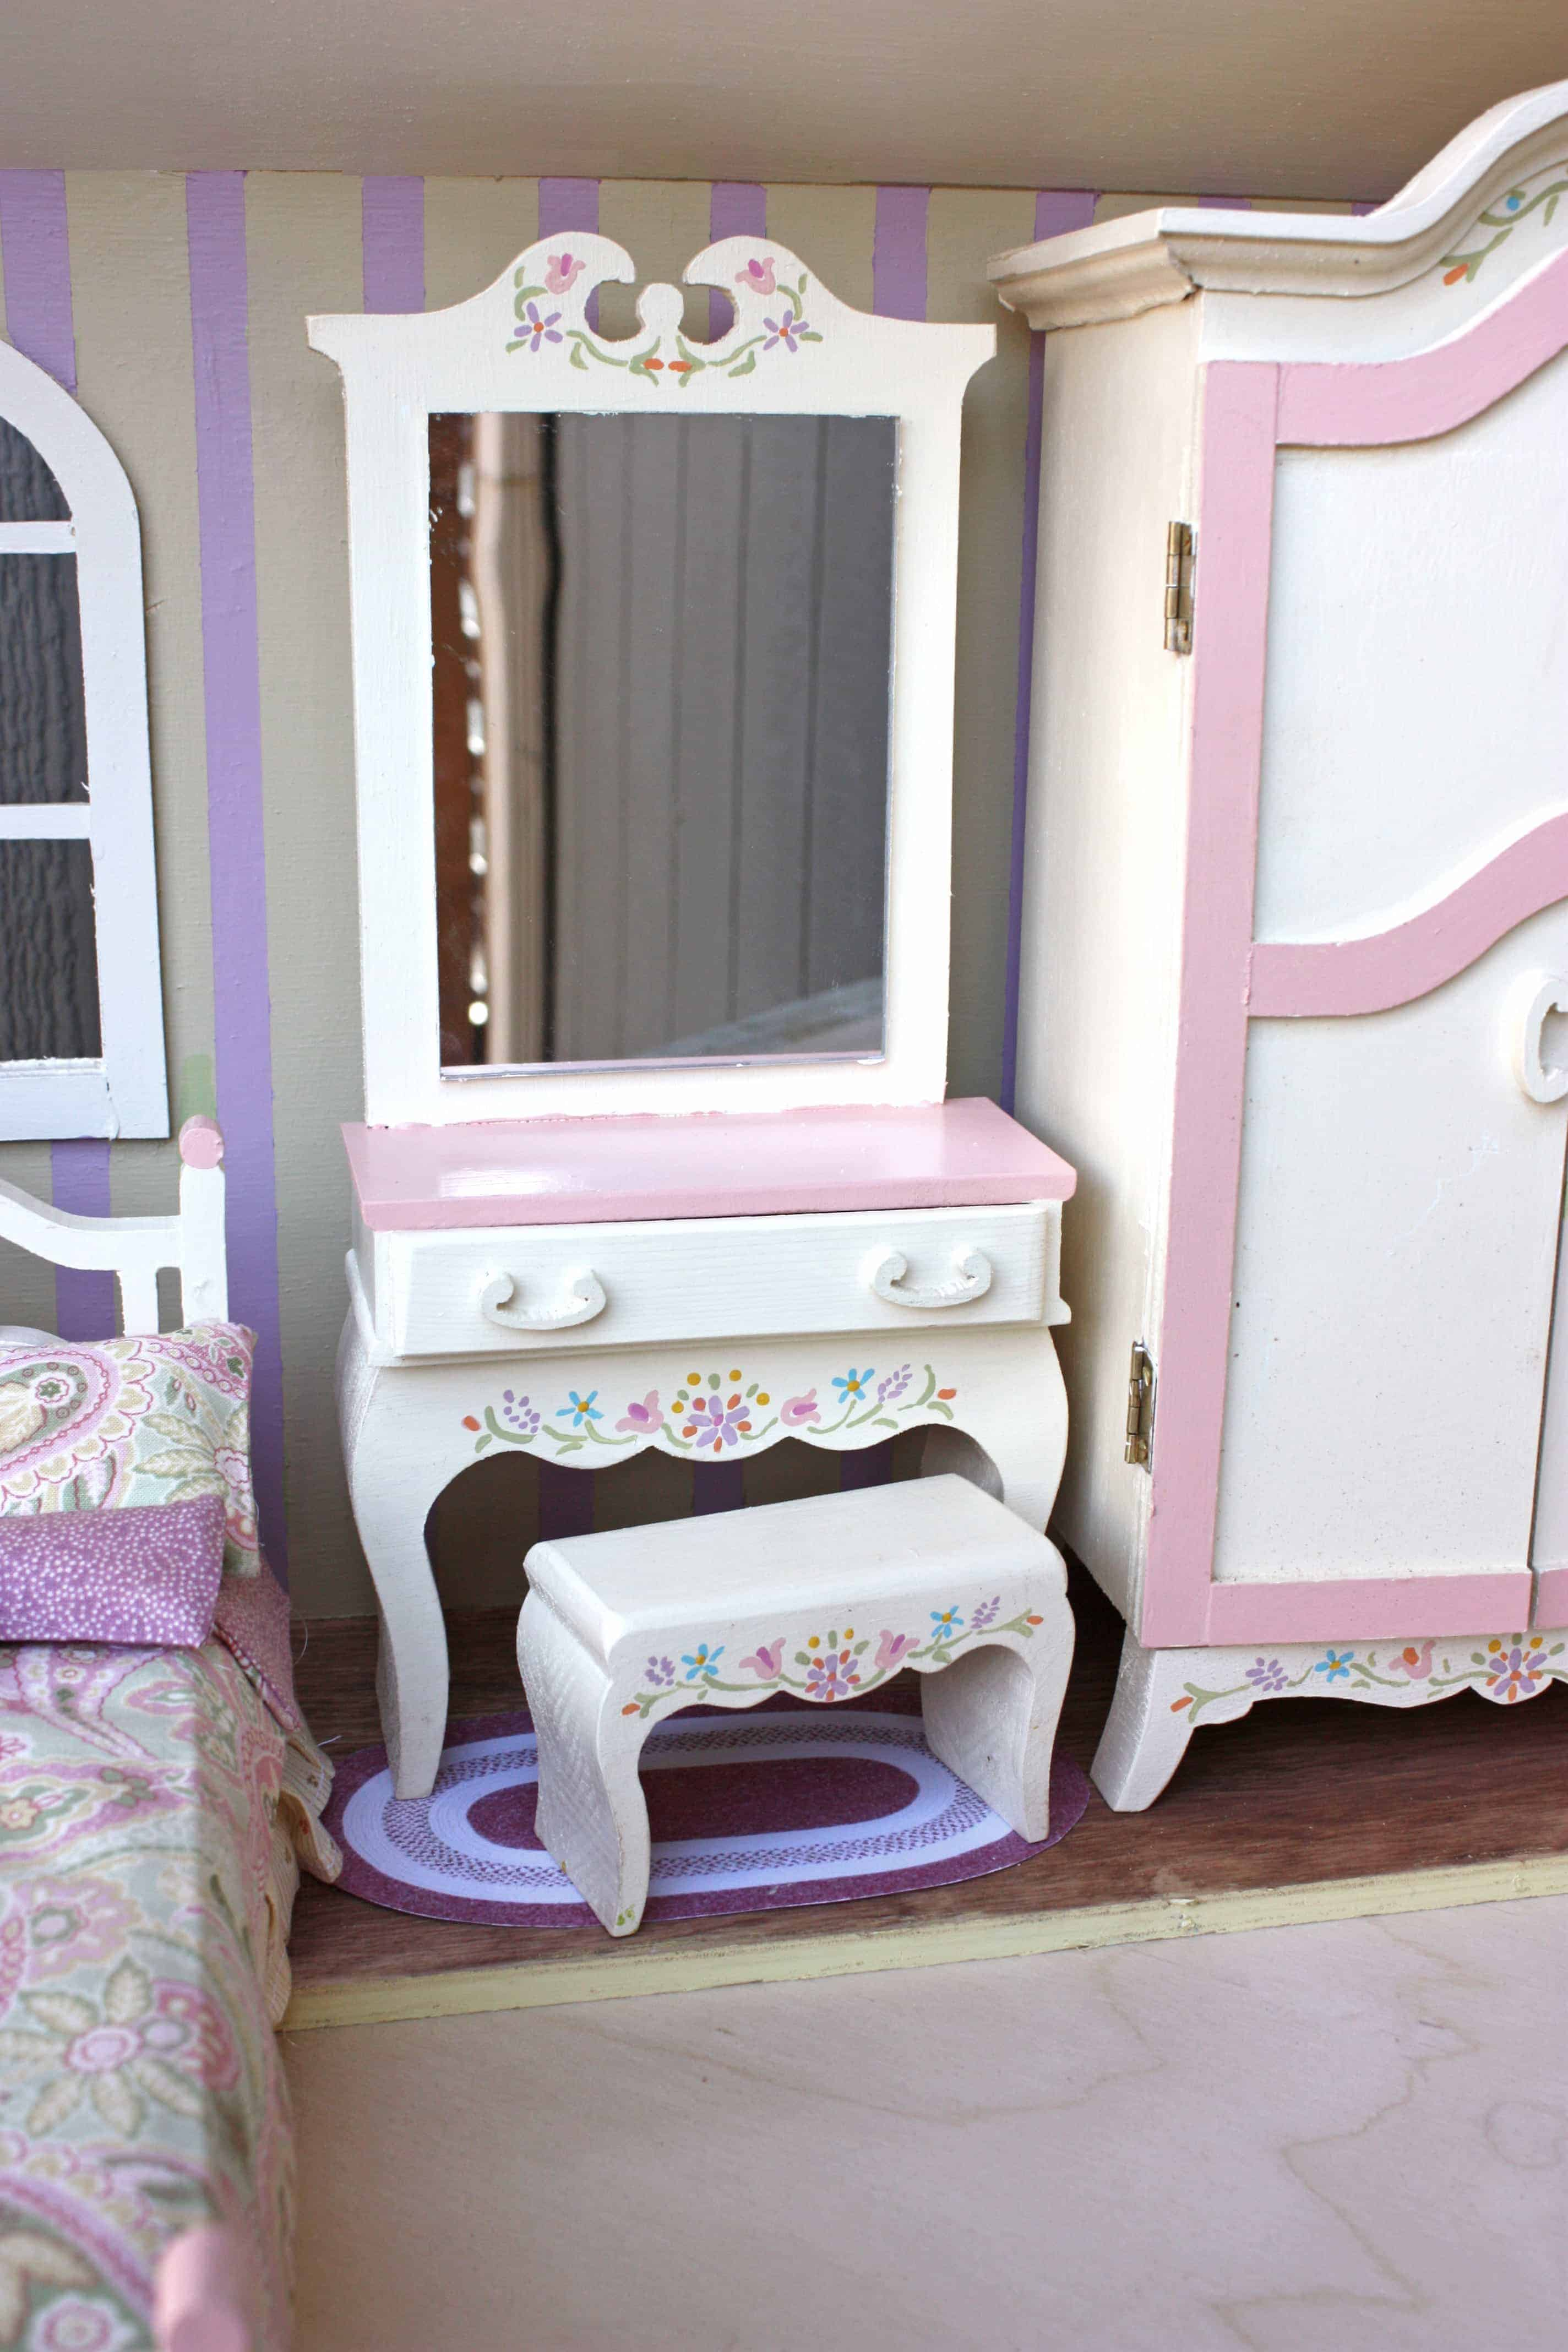 Close and Carry Barbie ® House Woodworking Plans